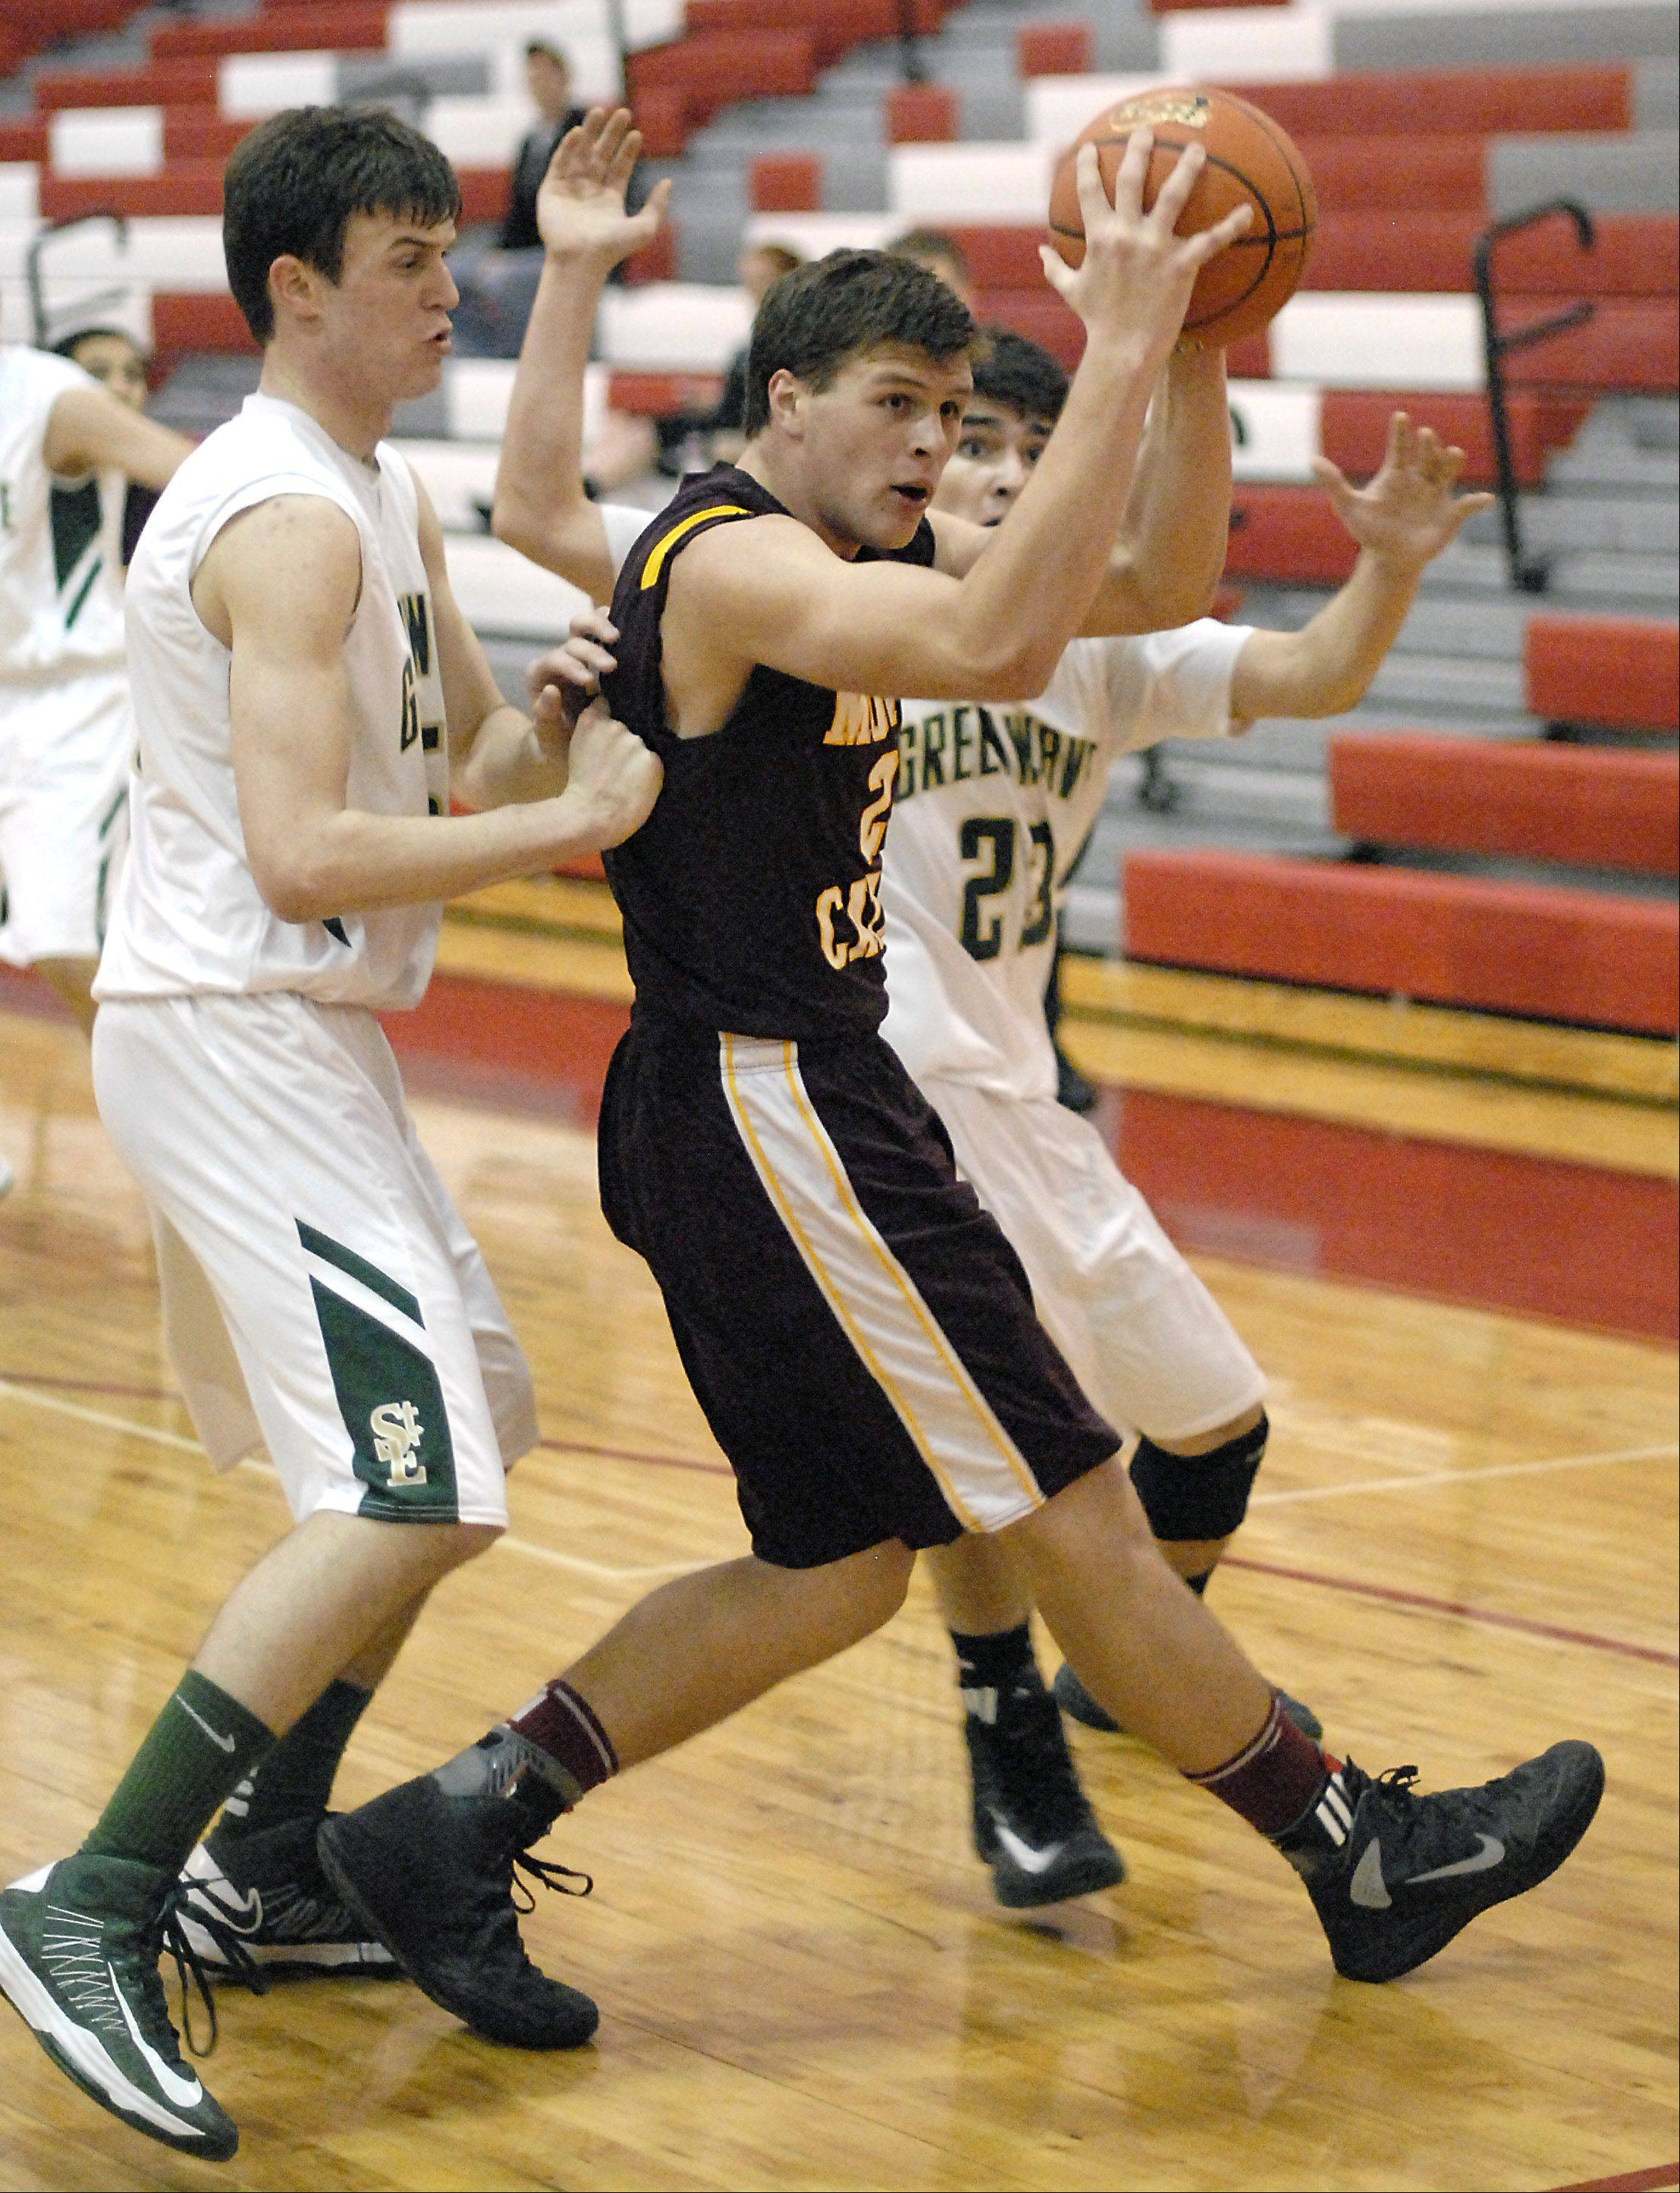 St. Edward's Nick Duffy and Danny Favela surround Montini's Matt Brachmann.